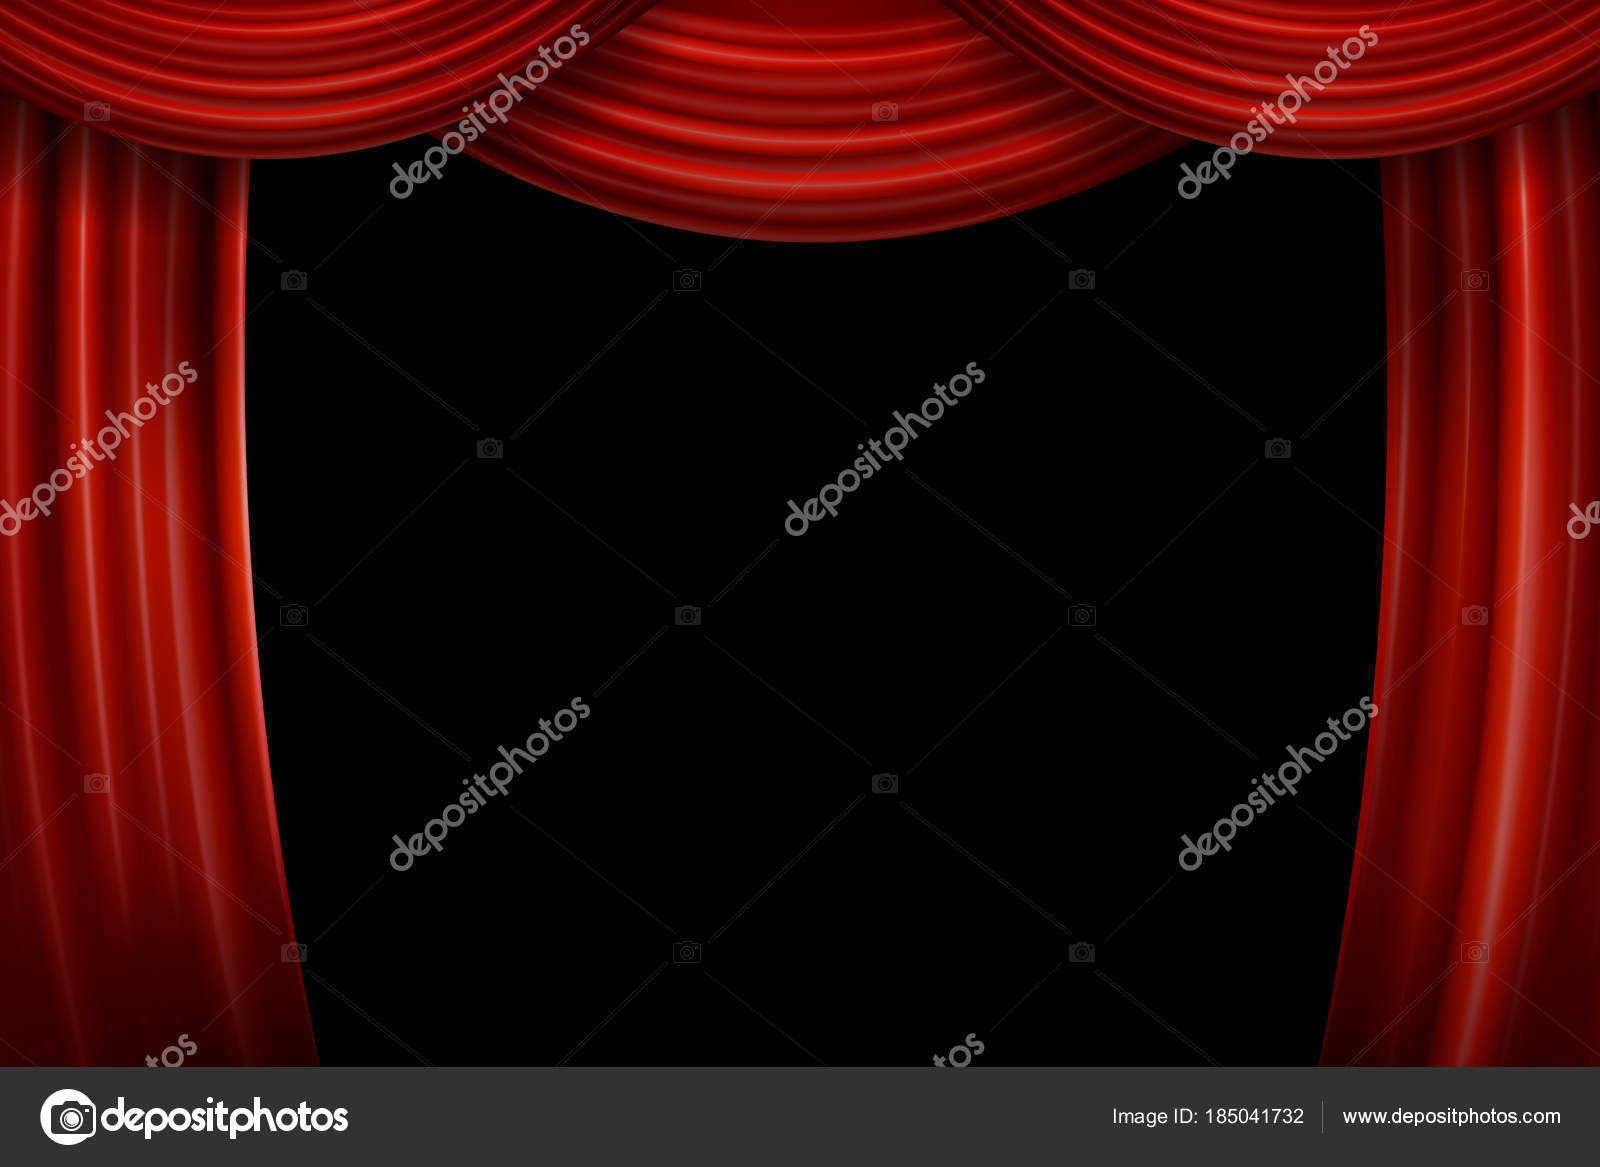 image velvet curtain shutterstock movie curtains with red stock open black photo screen